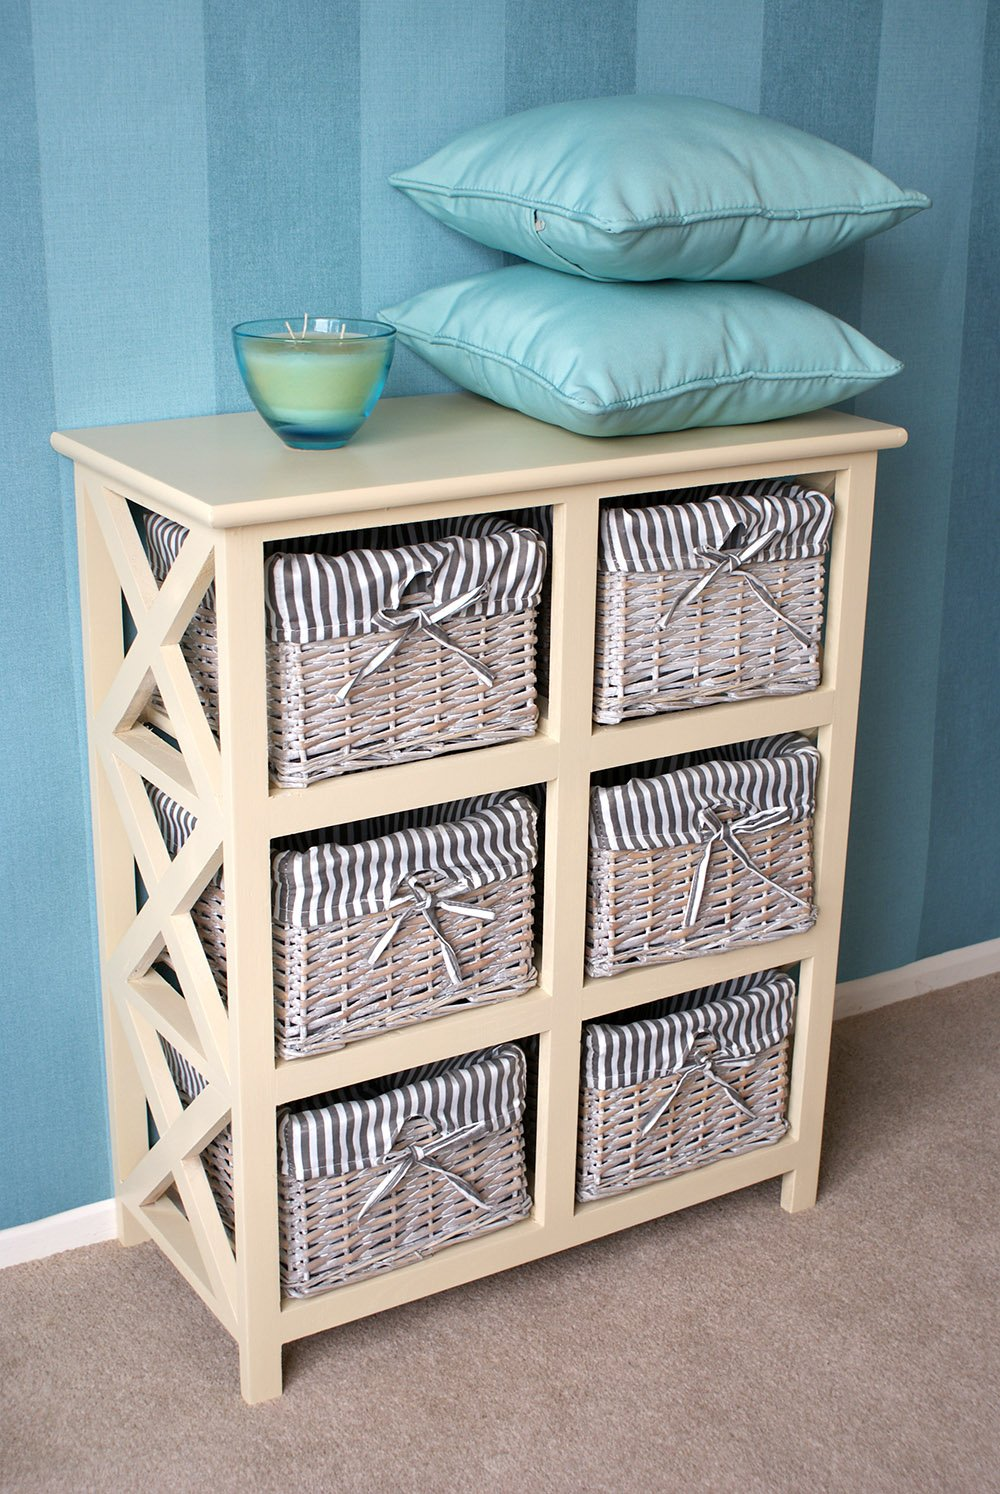 Superbe Casamoré Selsey 6 Drawer Wicker Storage Wooden Unit/Chest Drawers Fabric  Lined Removable Baskets: Amazon.co.uk: Kitchen U0026 Home